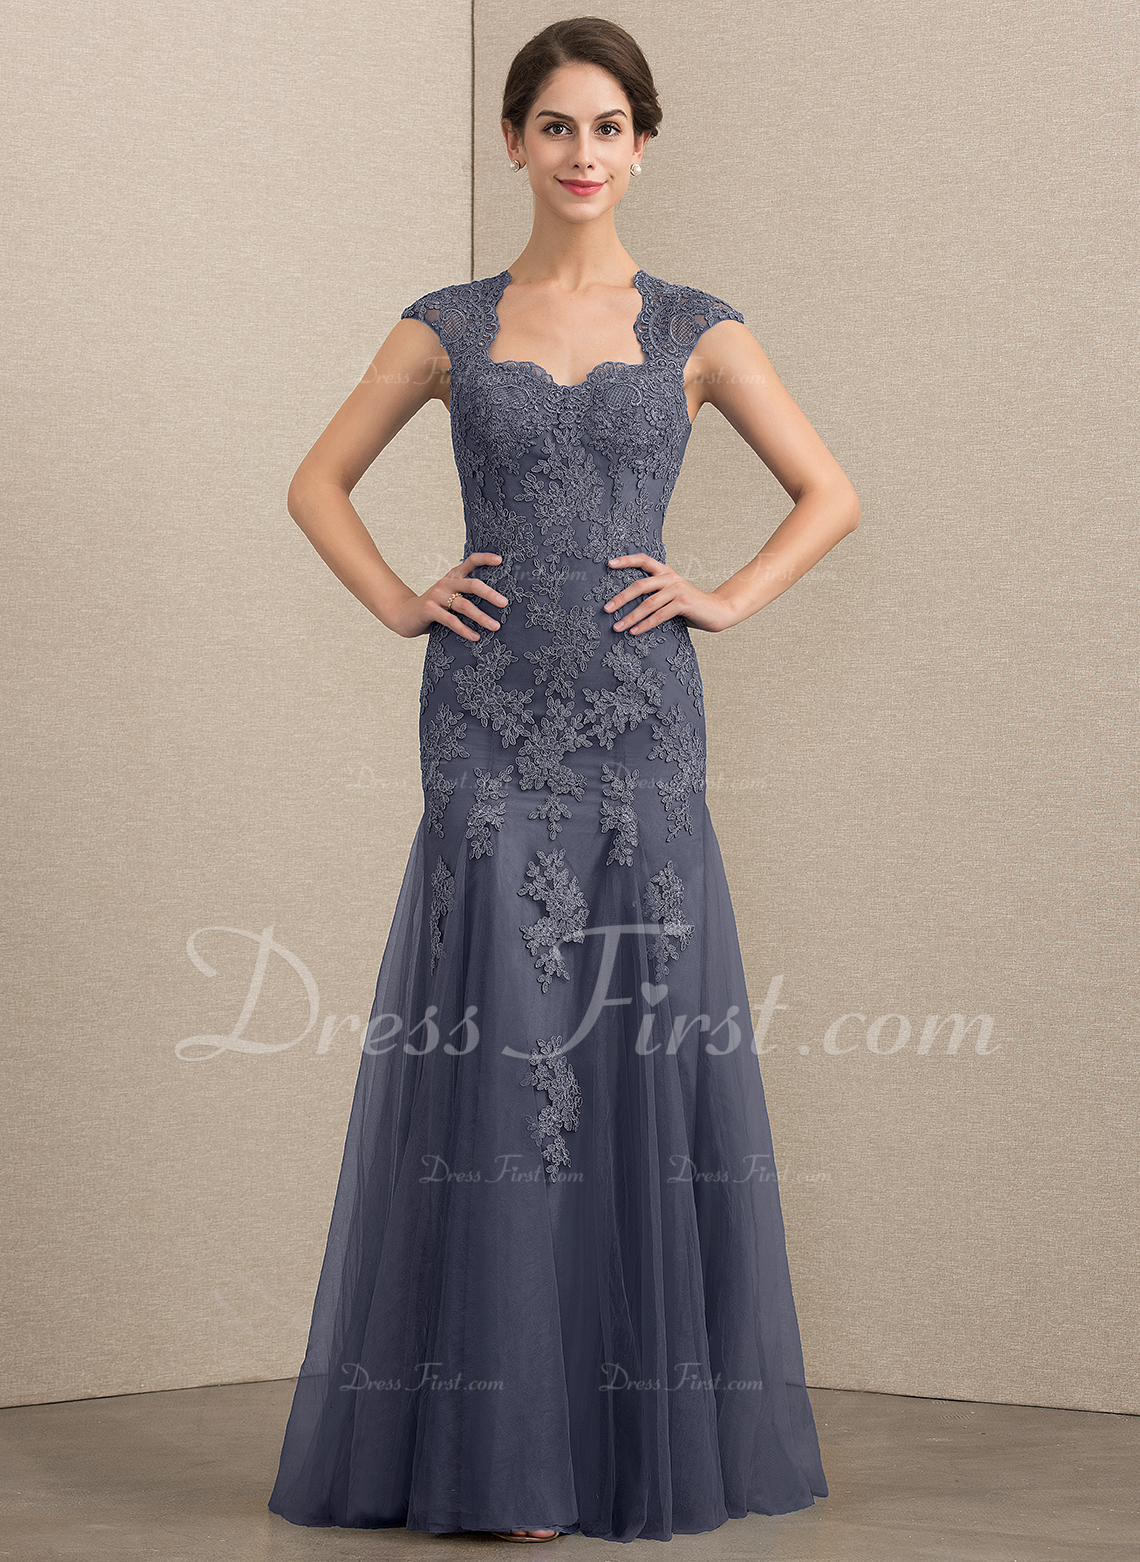 Trumpet/Mermaid Sweetheart Floor-Length Tulle Lace Mother of the Bride Dress